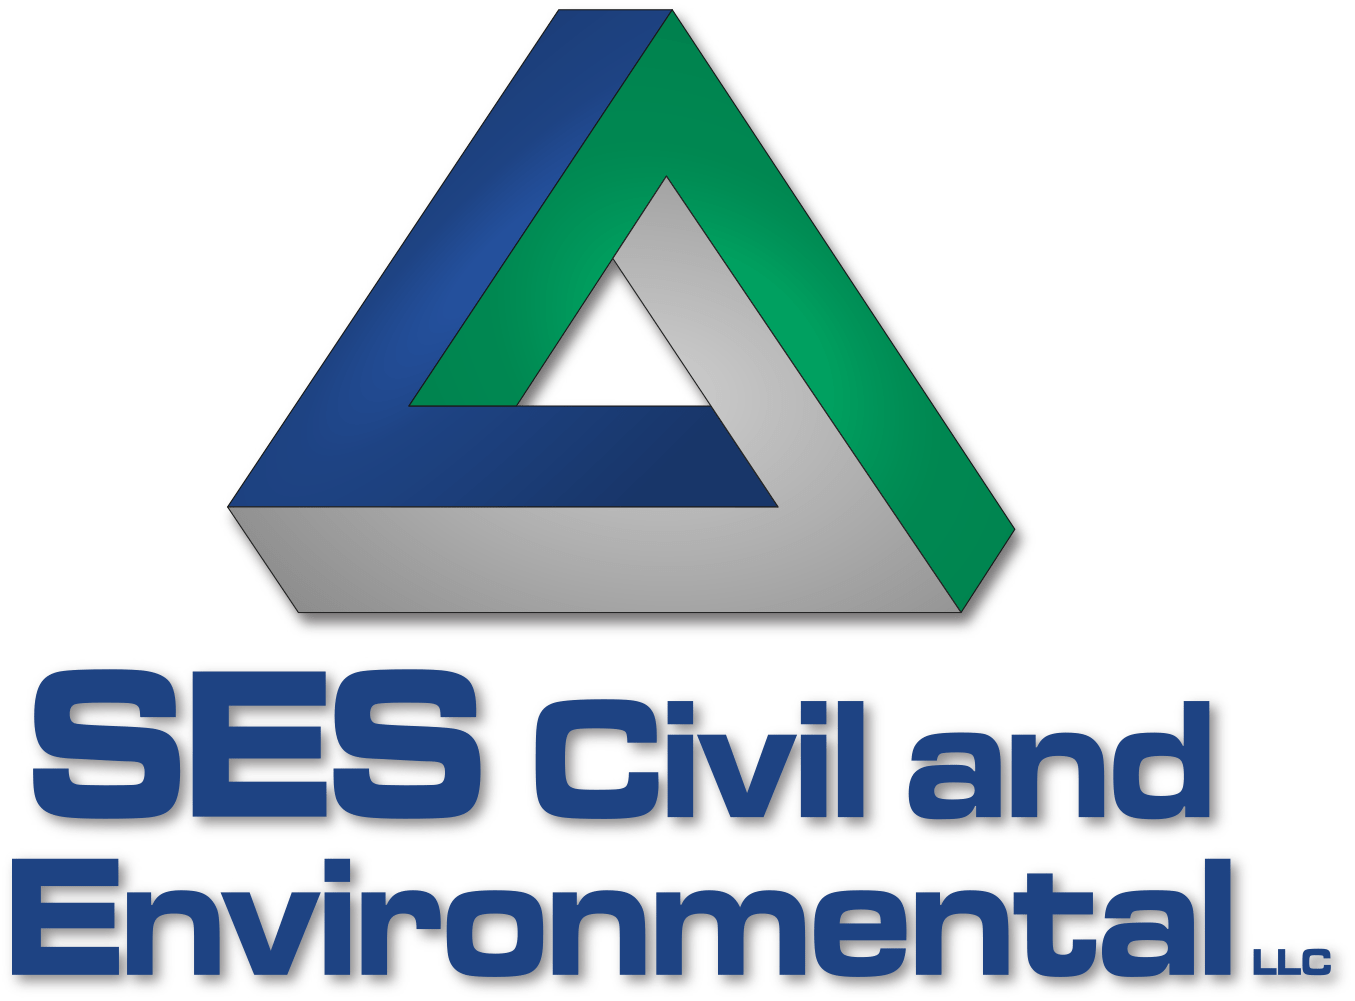 SES Civil and Environmental LLC